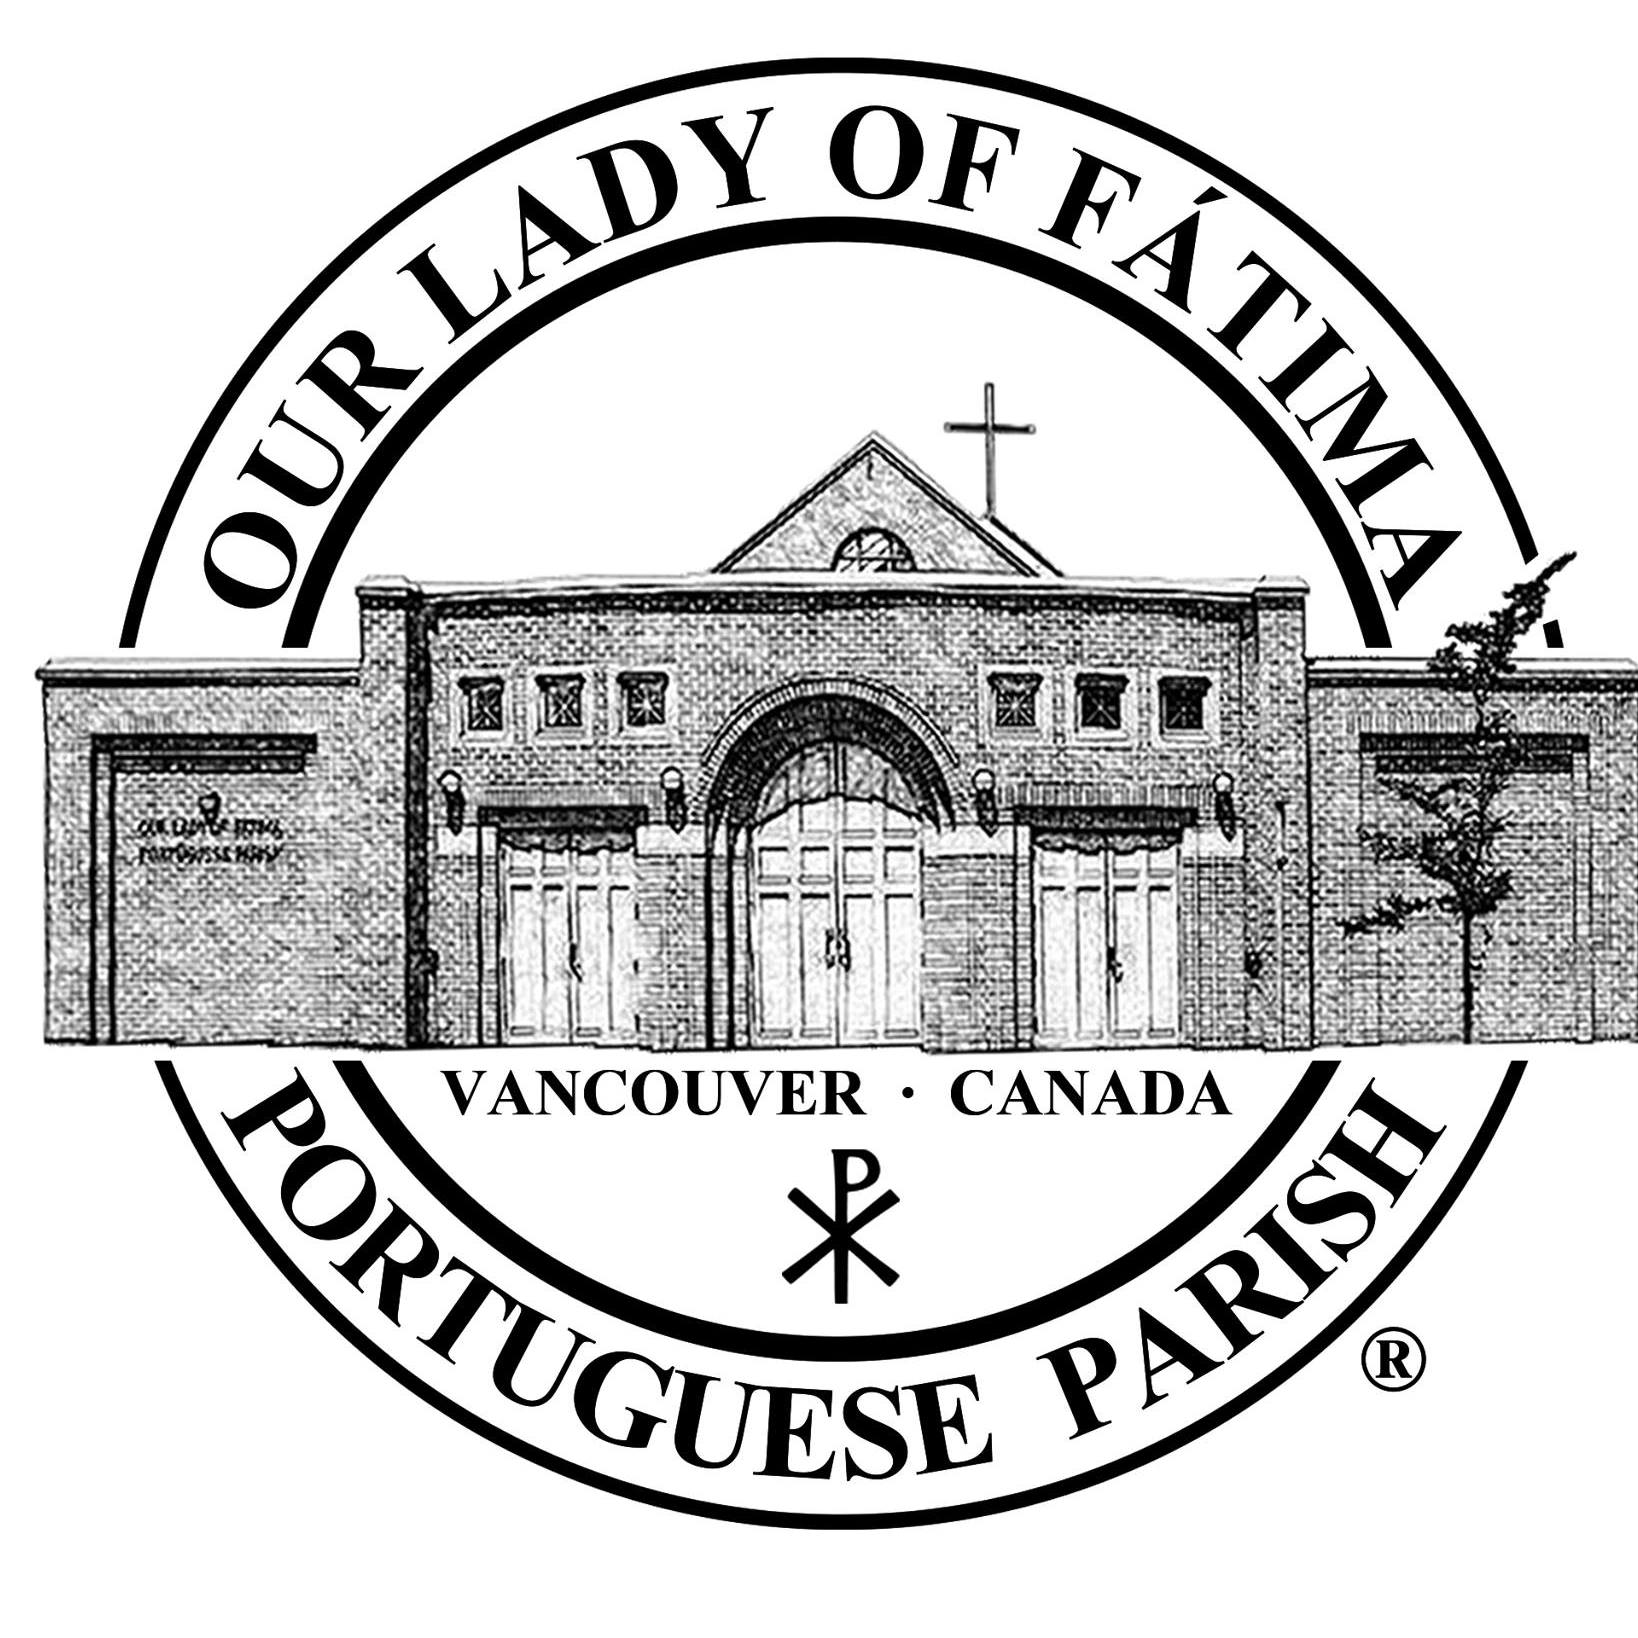 Our Lady of Fatima Portuguese Parish in Vancouver